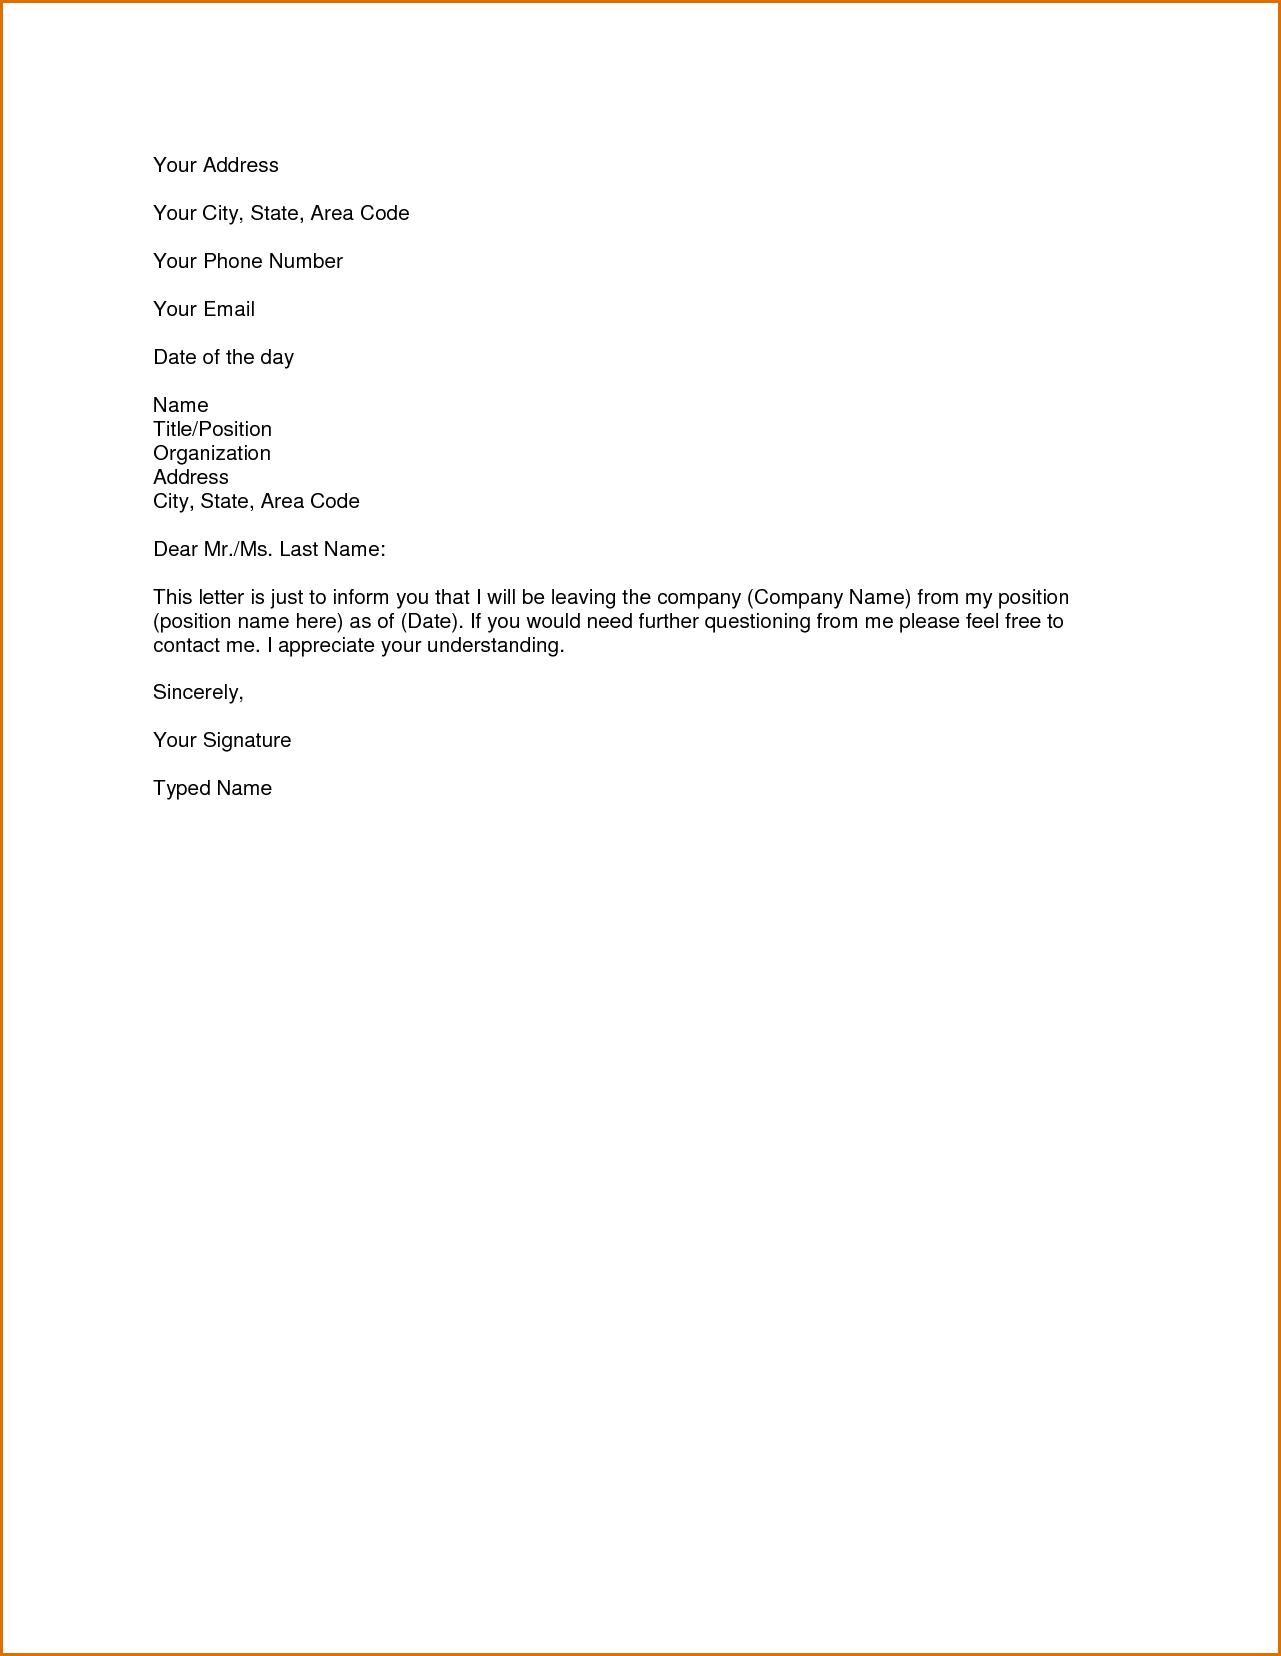 Resume sample business letters for students